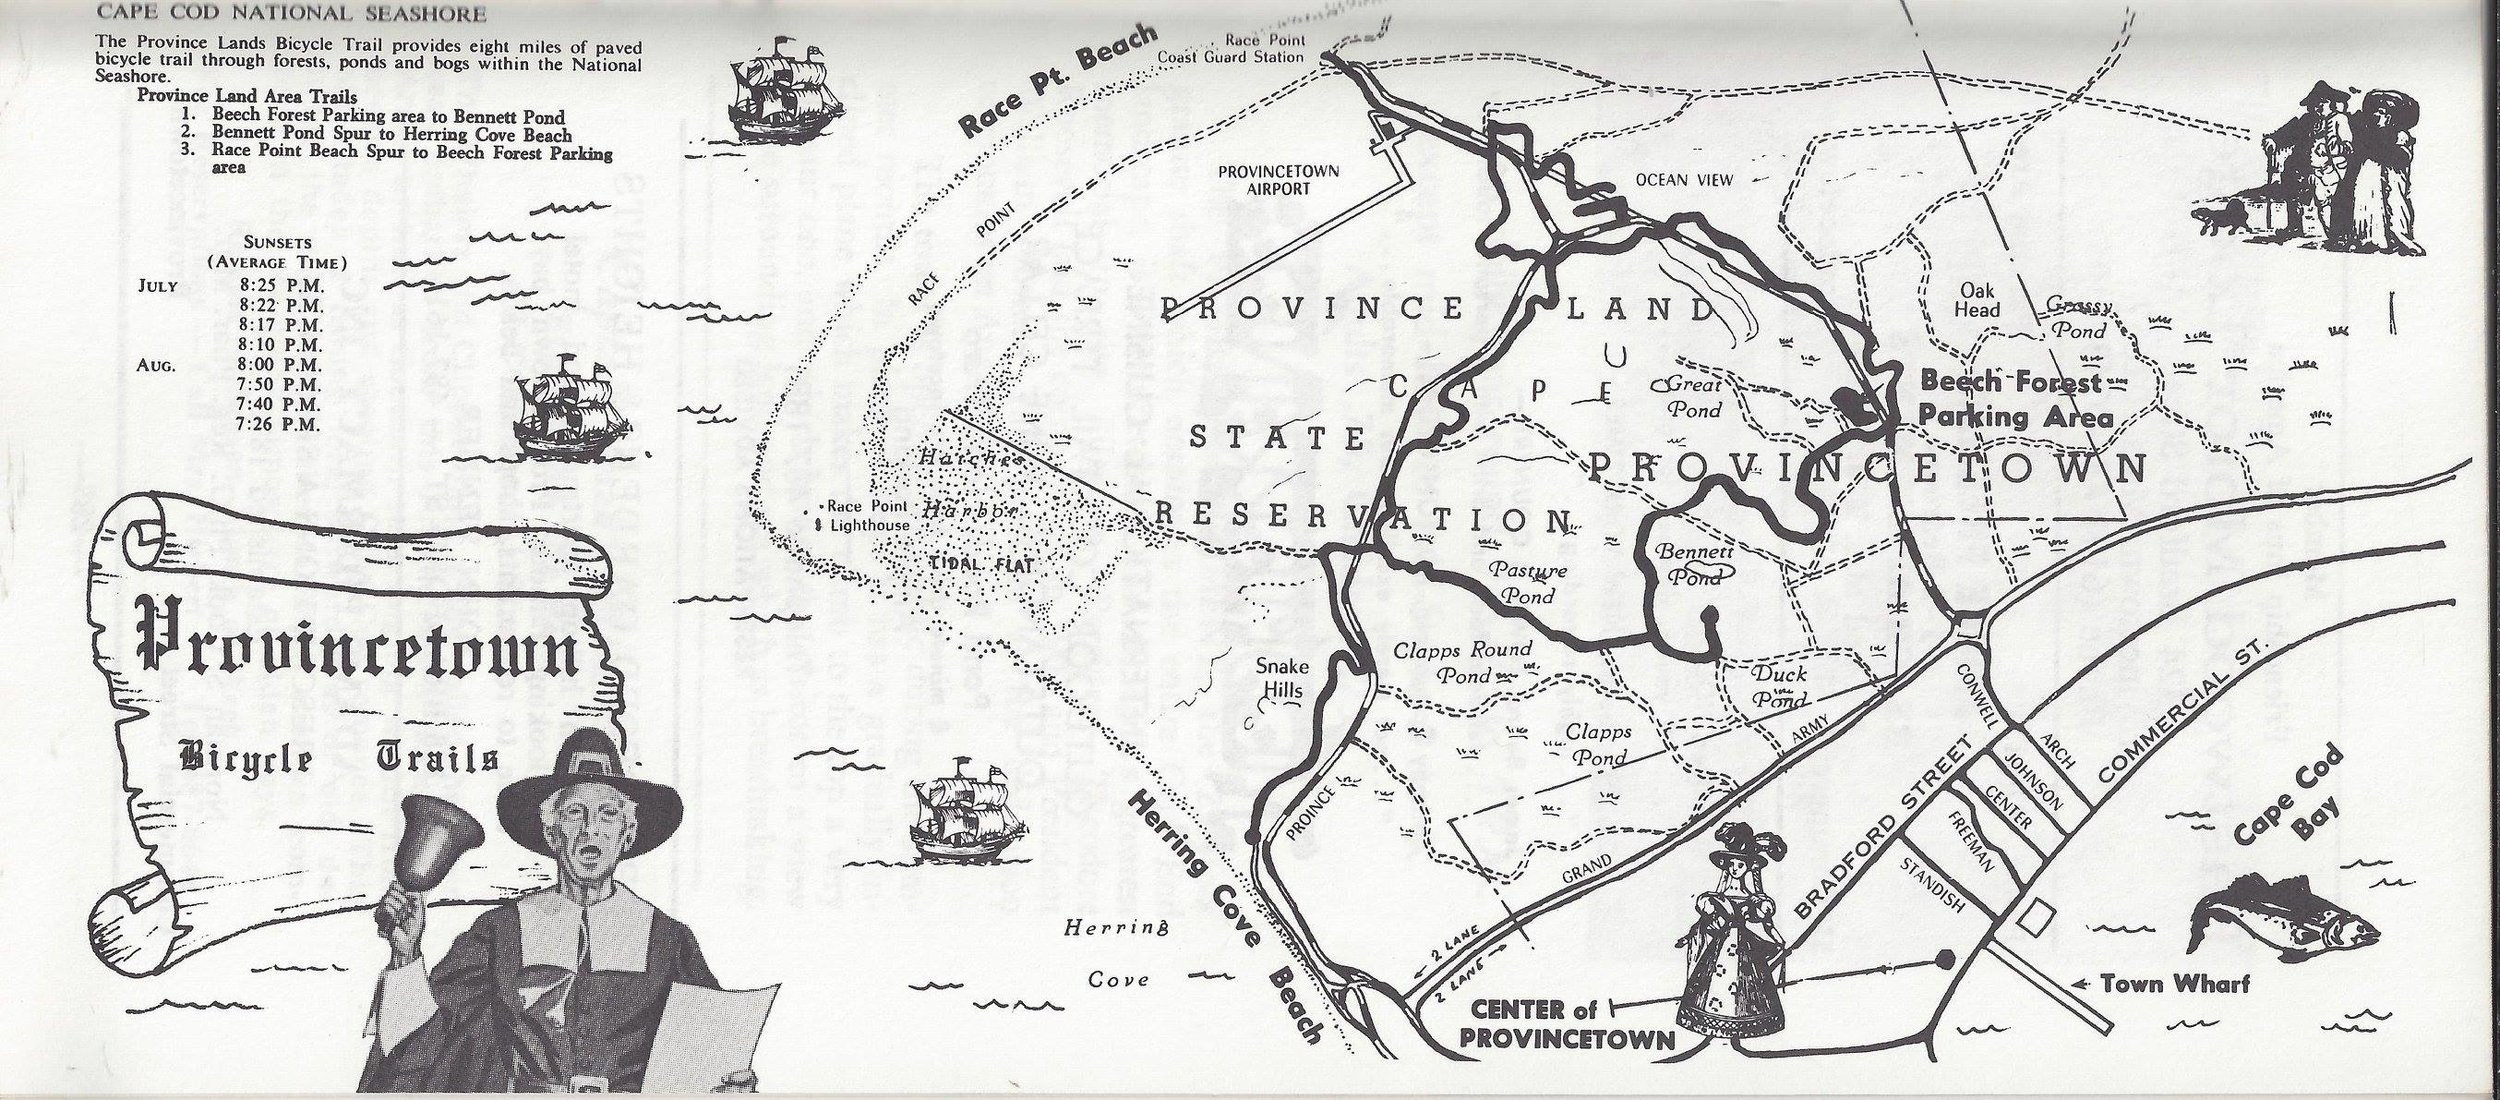 Provincetown Chamber of Commerce map showing the Province Lands Bike Trail, circa 1970